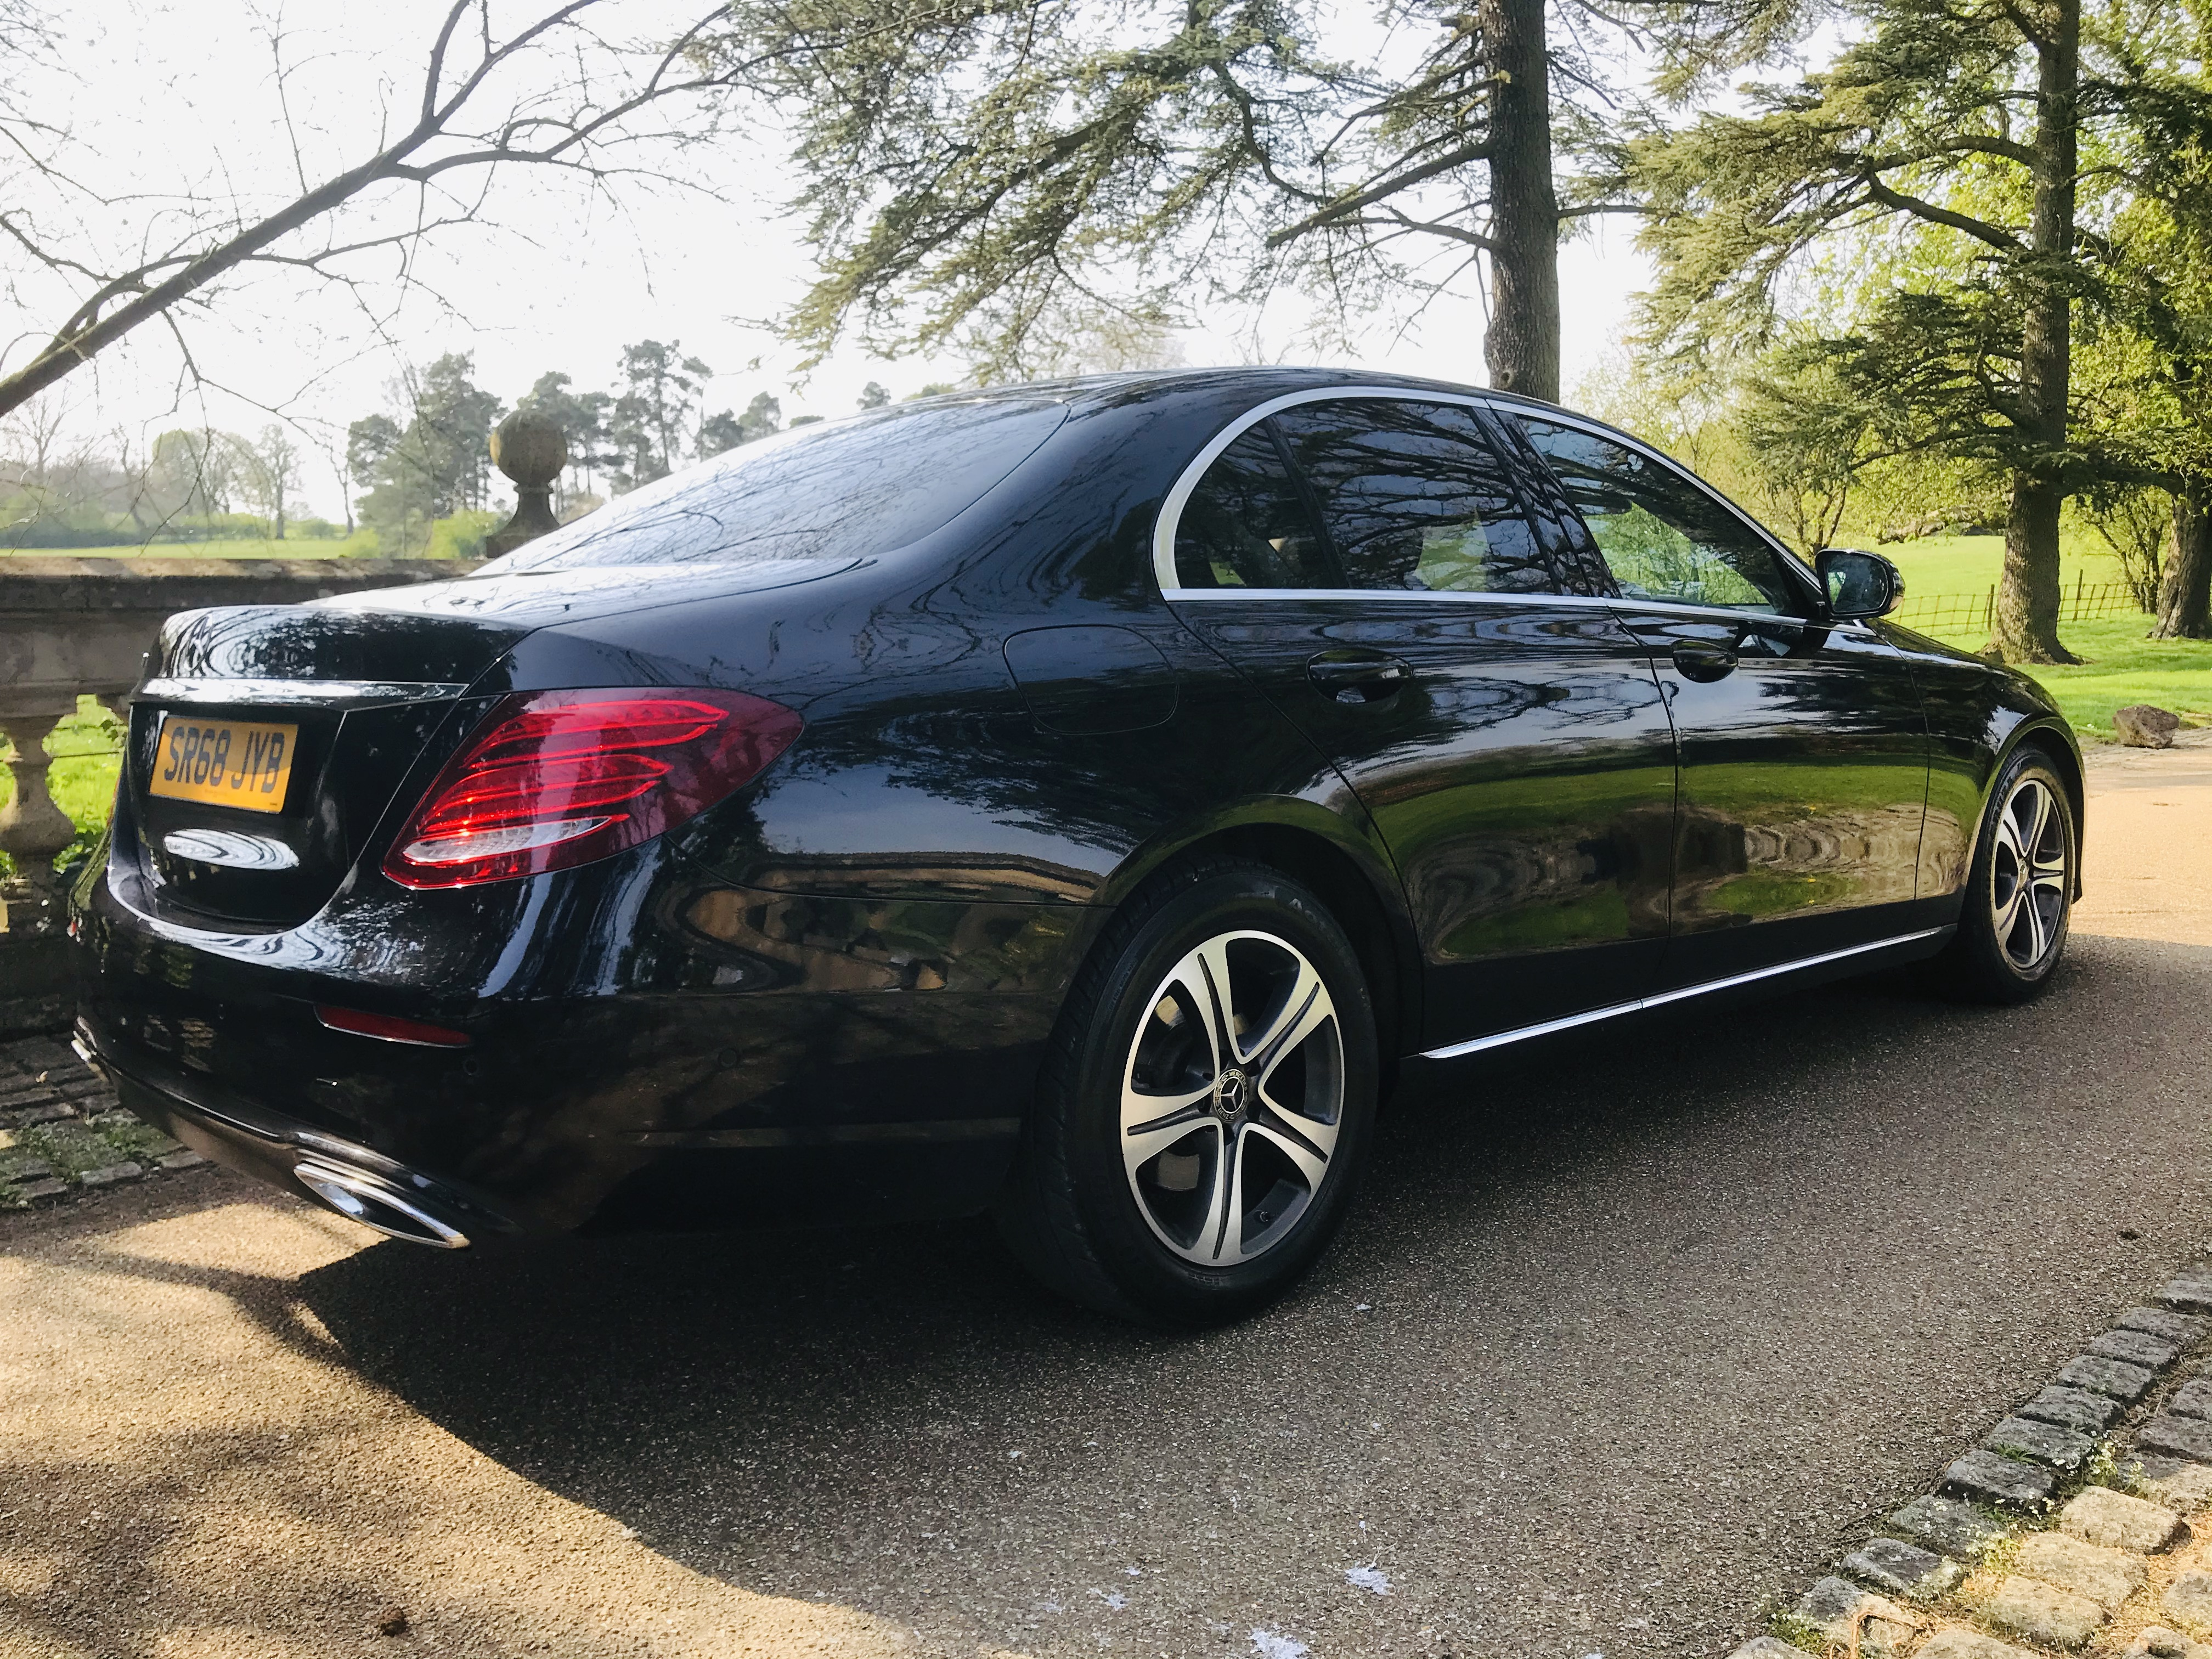 """On Sale MERCEDES E220d """"SPECIAL EQUIPMENT"""" 9G TRONIC (2019 MODEL) 1 OWNER - SAT NAV - LEATHER - WOW! - Image 8 of 26"""